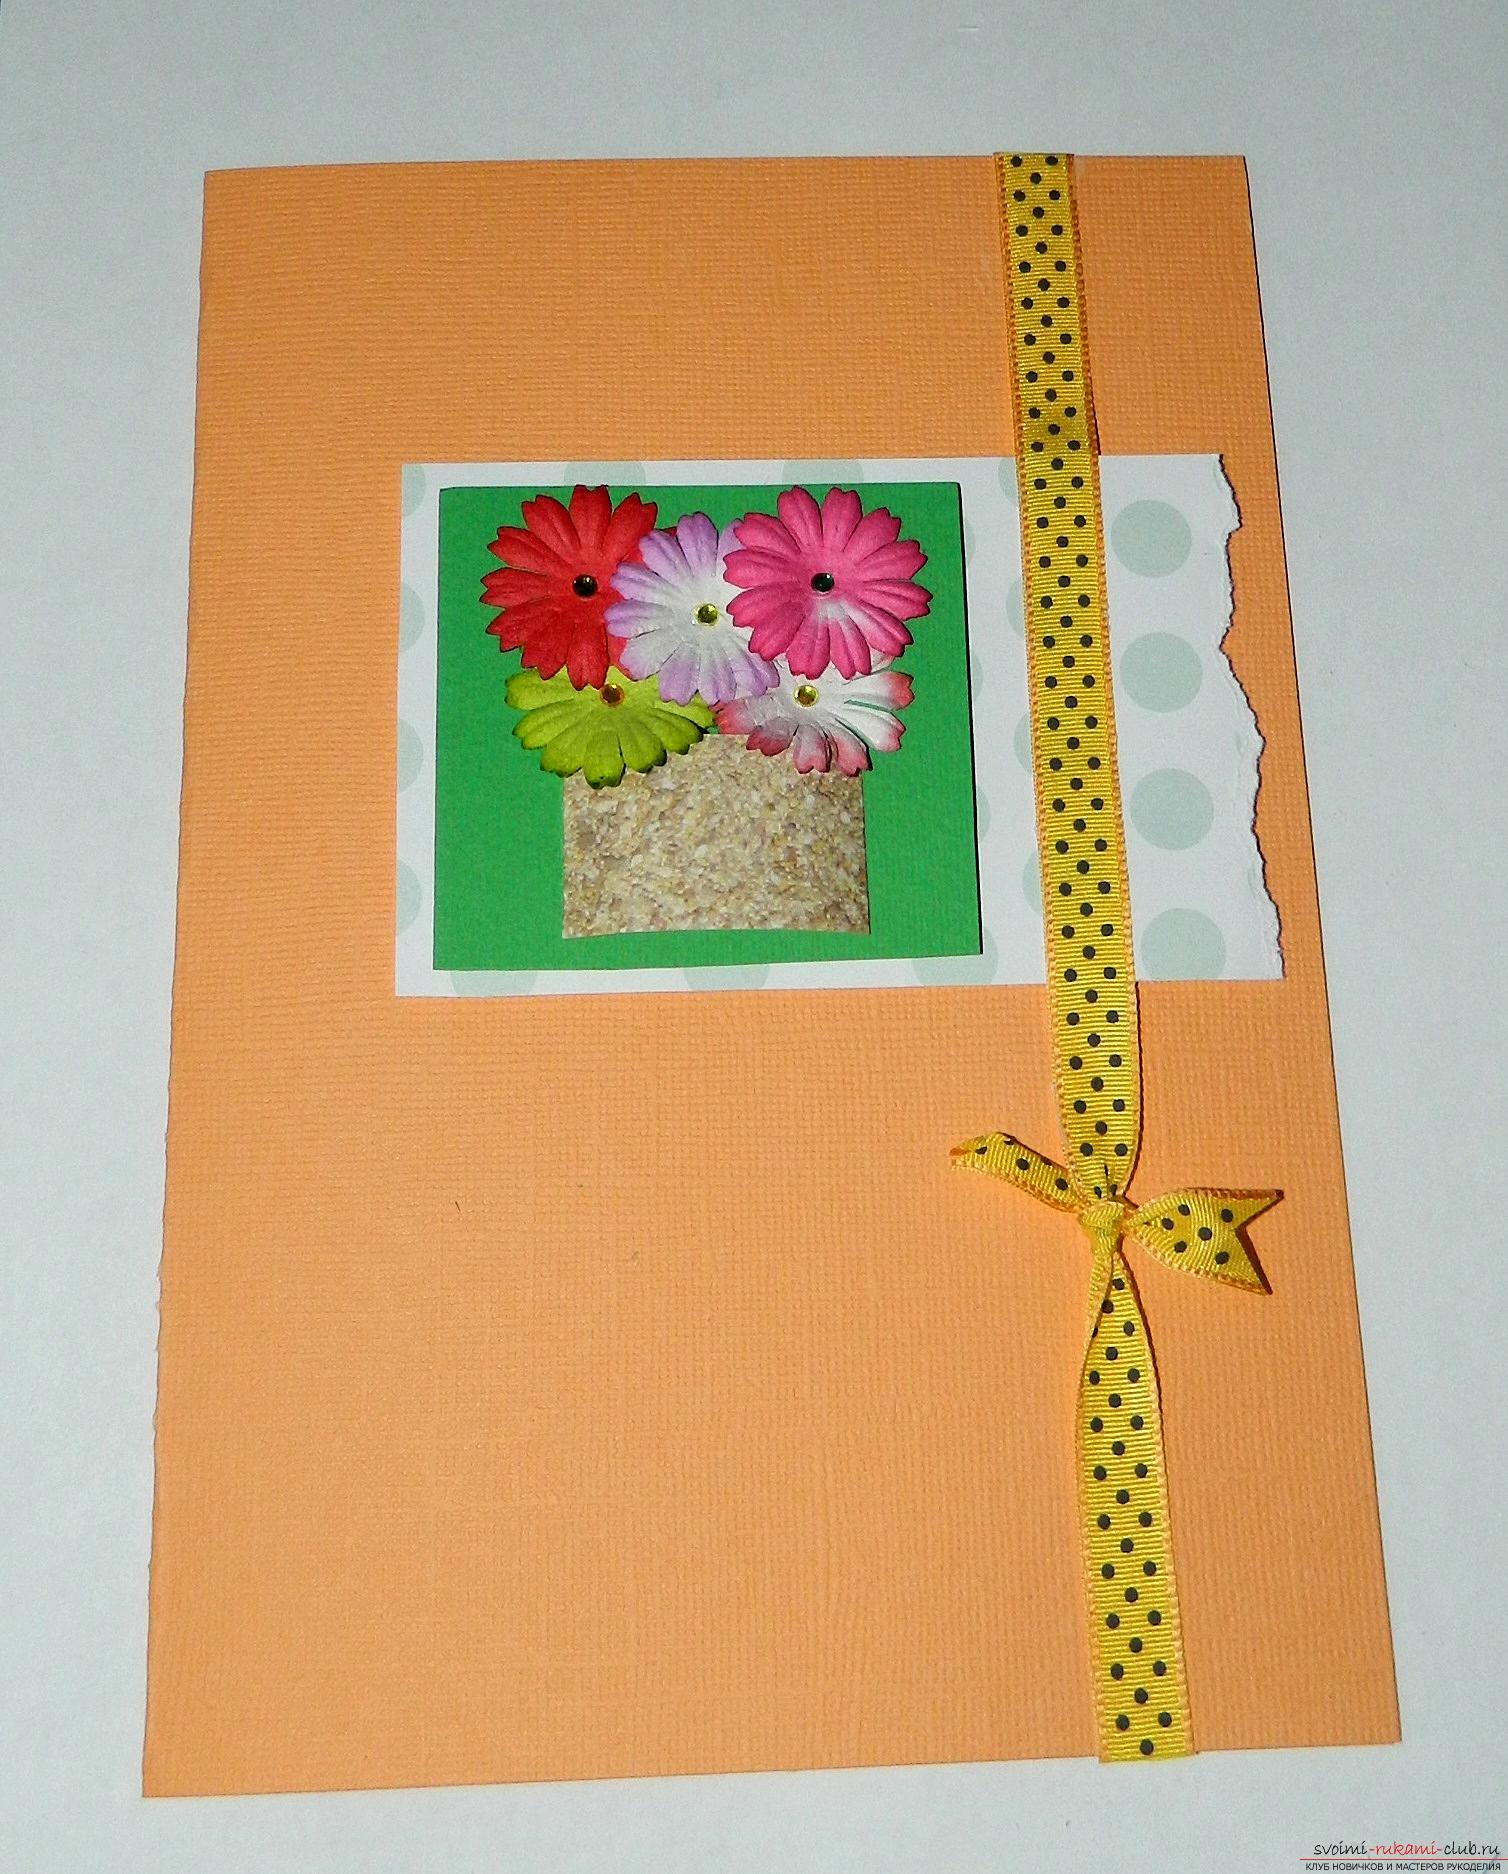 This master class will tell you how to make a card by yourself on a celebration .. Photo №13